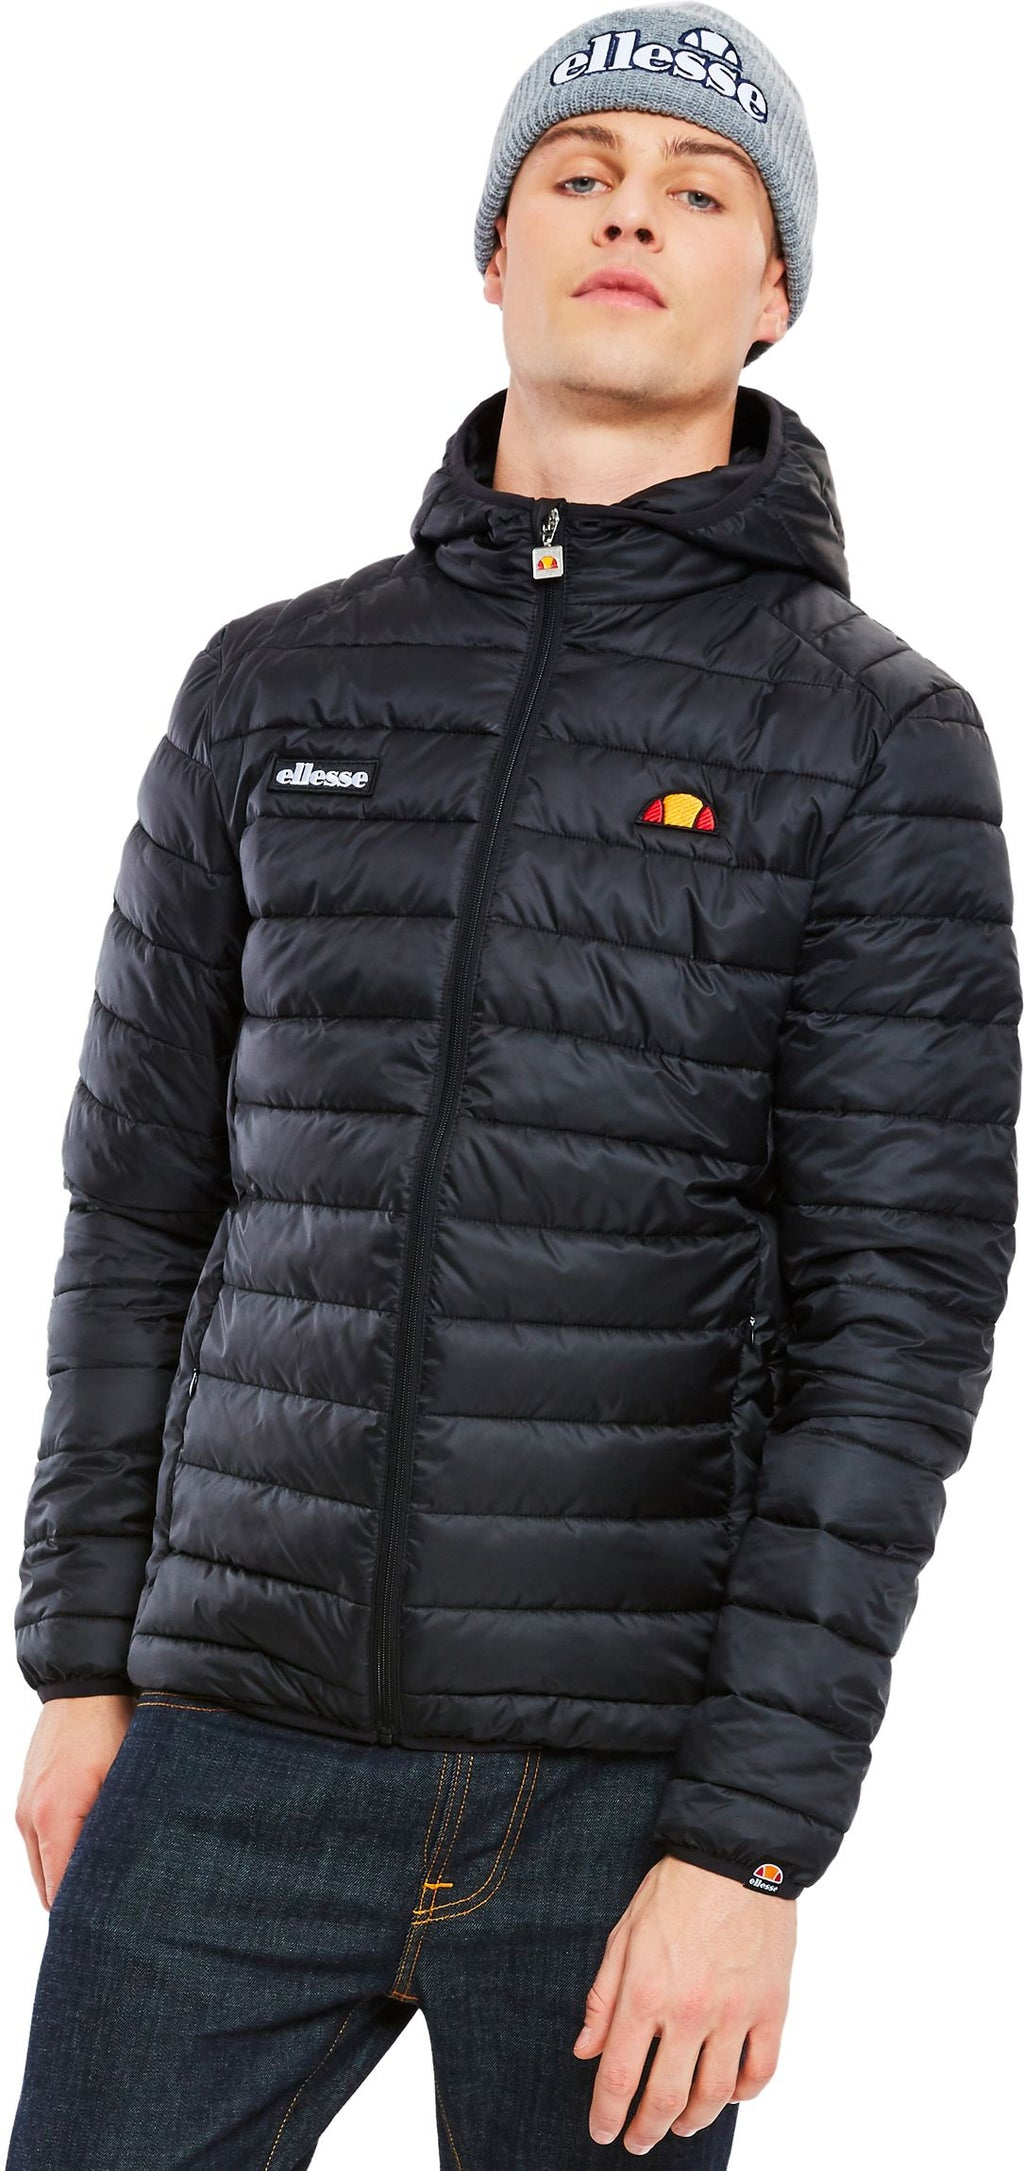 Ellesse-Lombardy-Padded-Jacket-Black